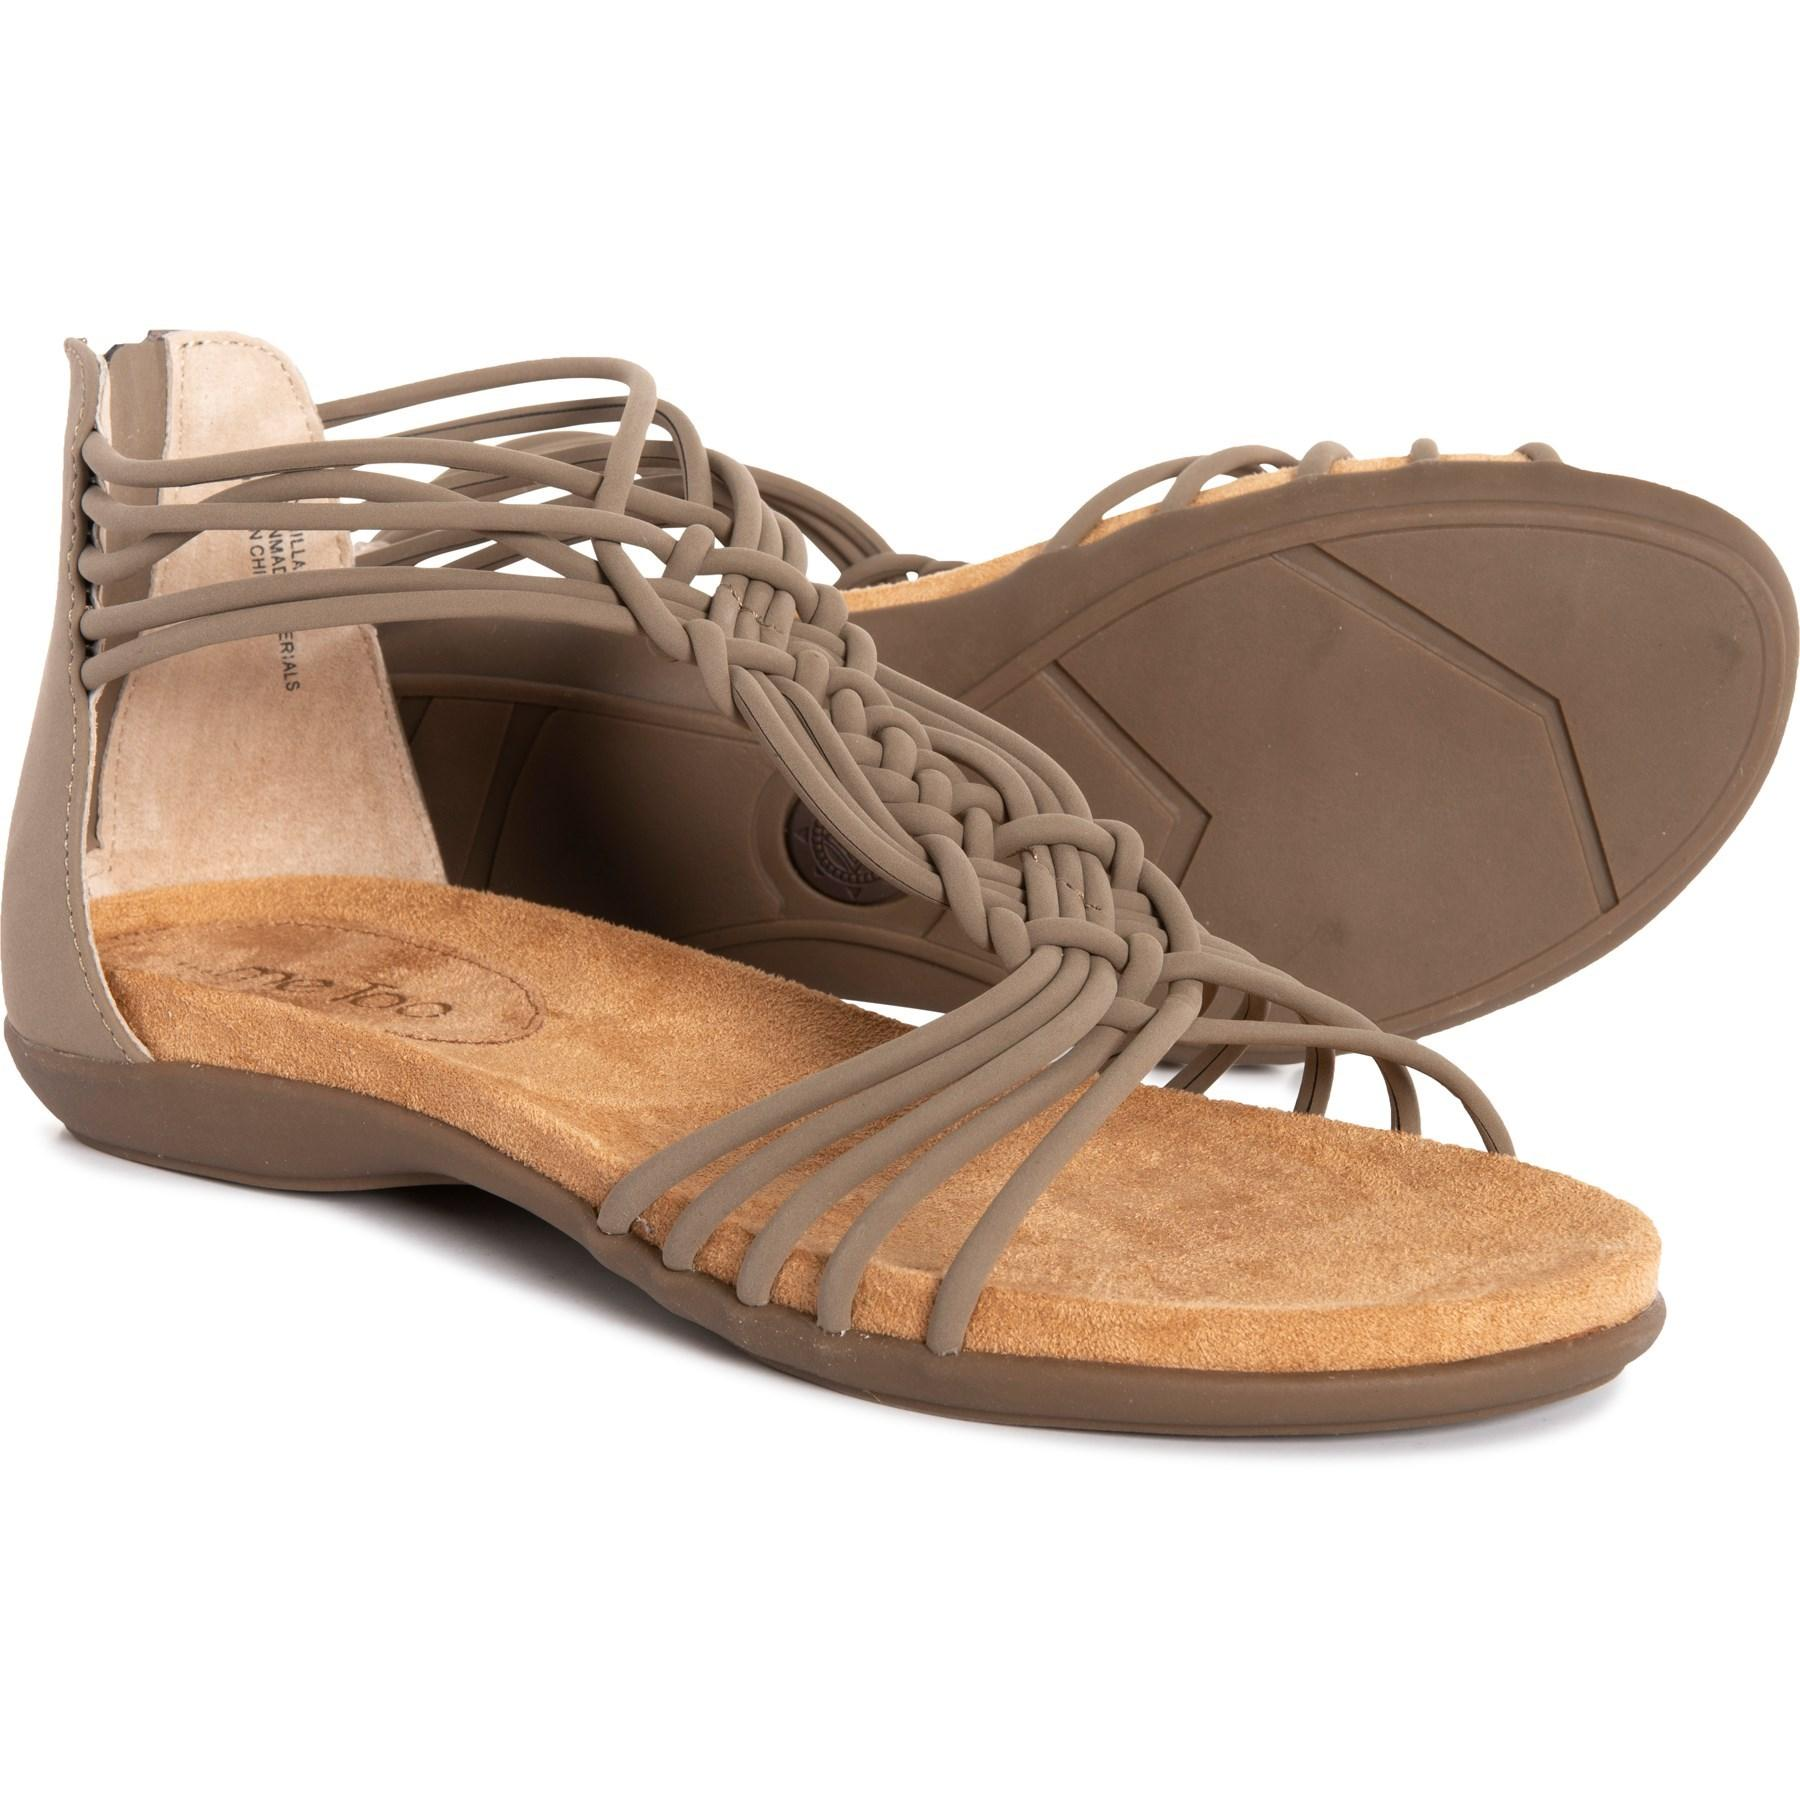 9f7d858f8201 Lyst - Me Too Camilla Sandals (for Women) in Brown